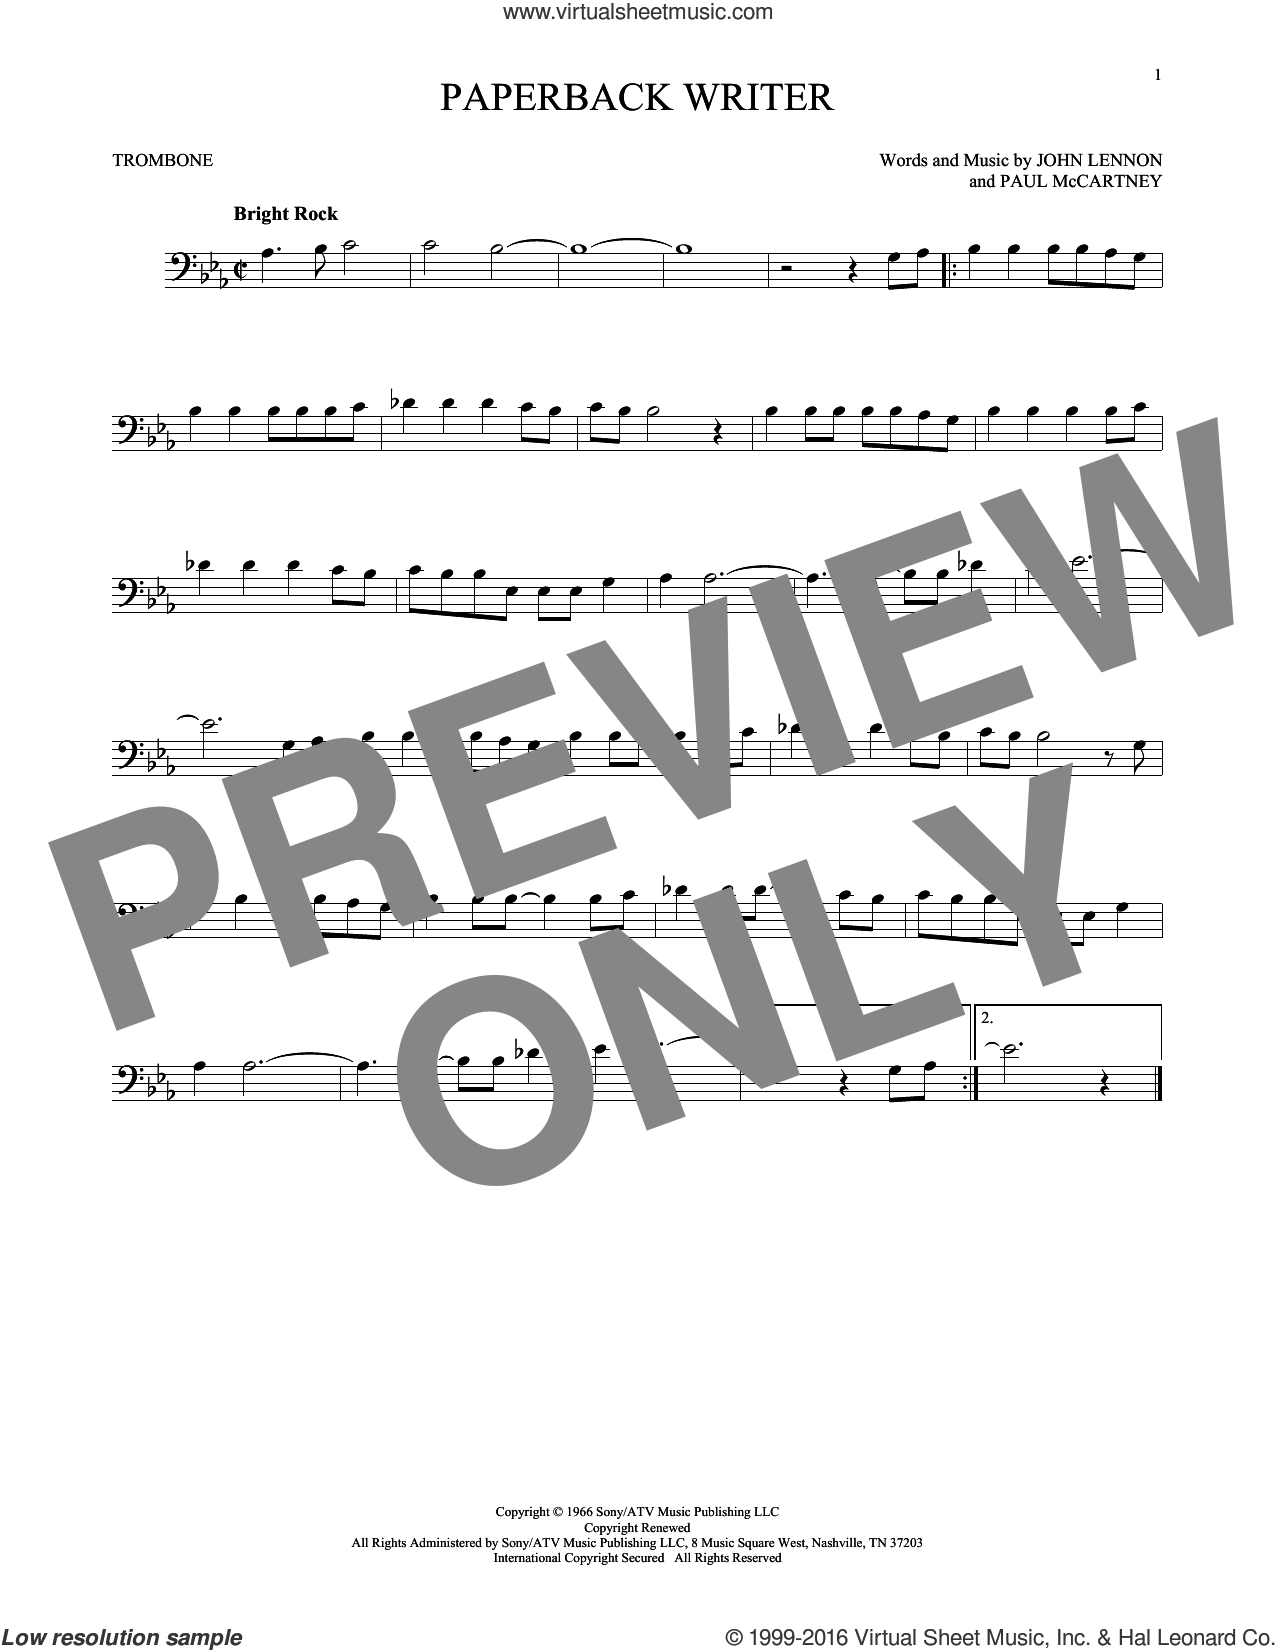 Paperback Writer sheet music for trombone solo by The Beatles, John Lennon and Paul McCartney, intermediate skill level